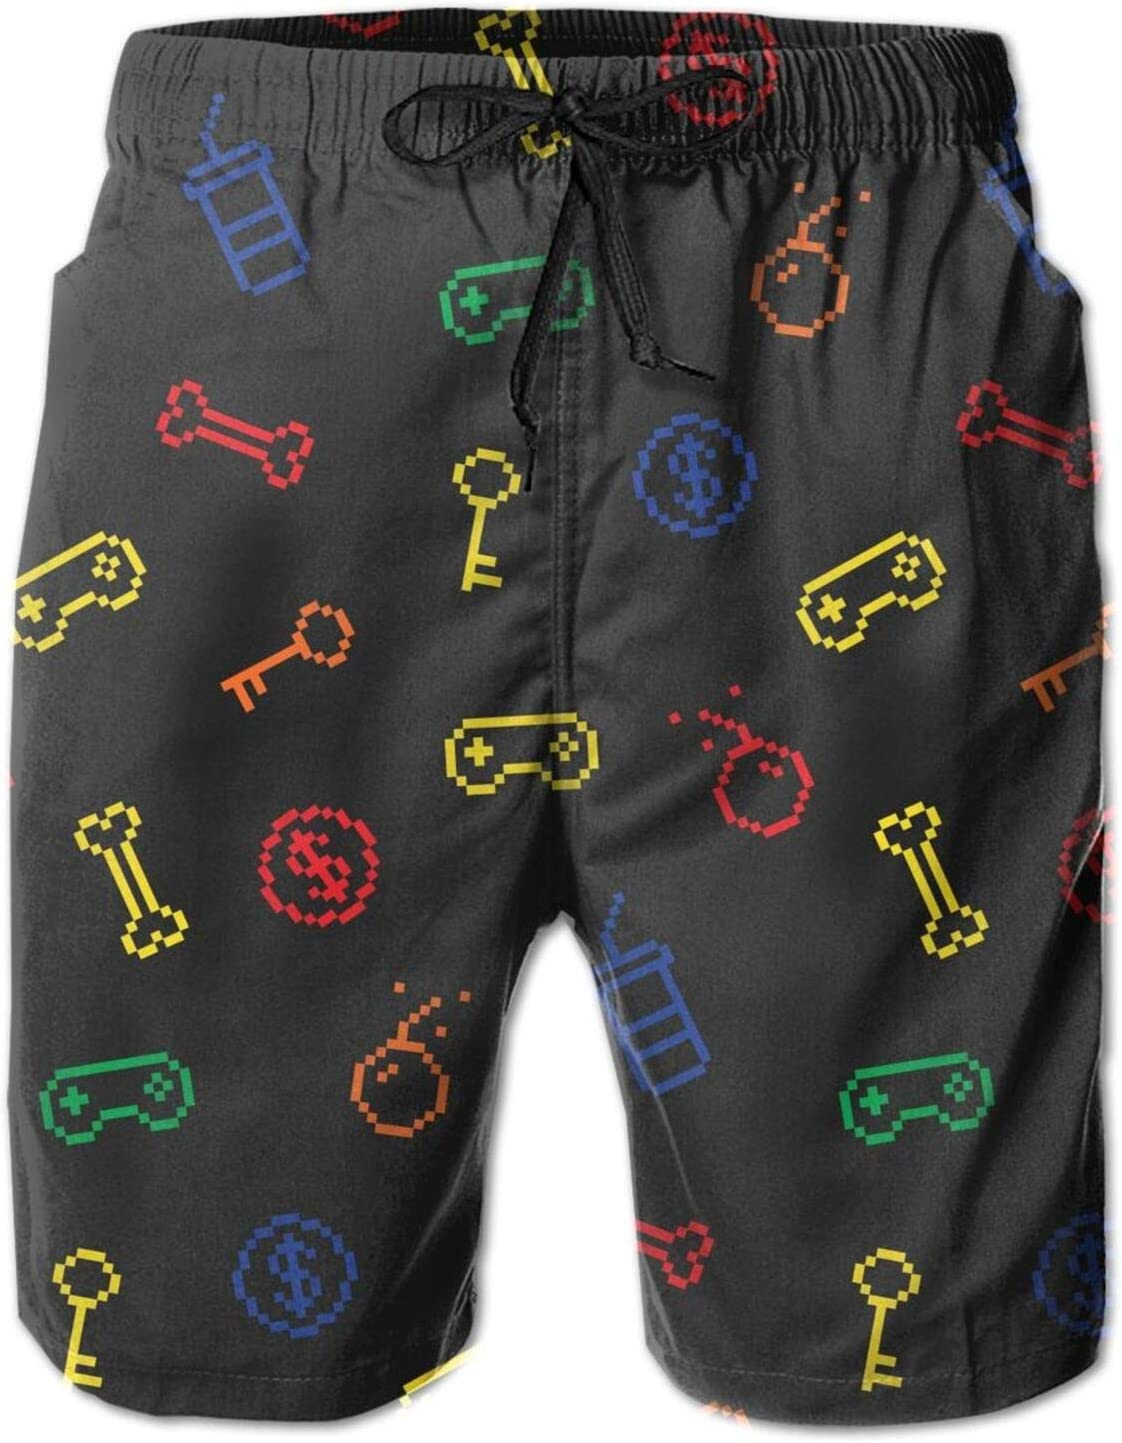 pengyong Game Video Gaming Pattern Summer Underwear Board Shorts Bathing Suits Holiday Swim Trunks Quick Dry